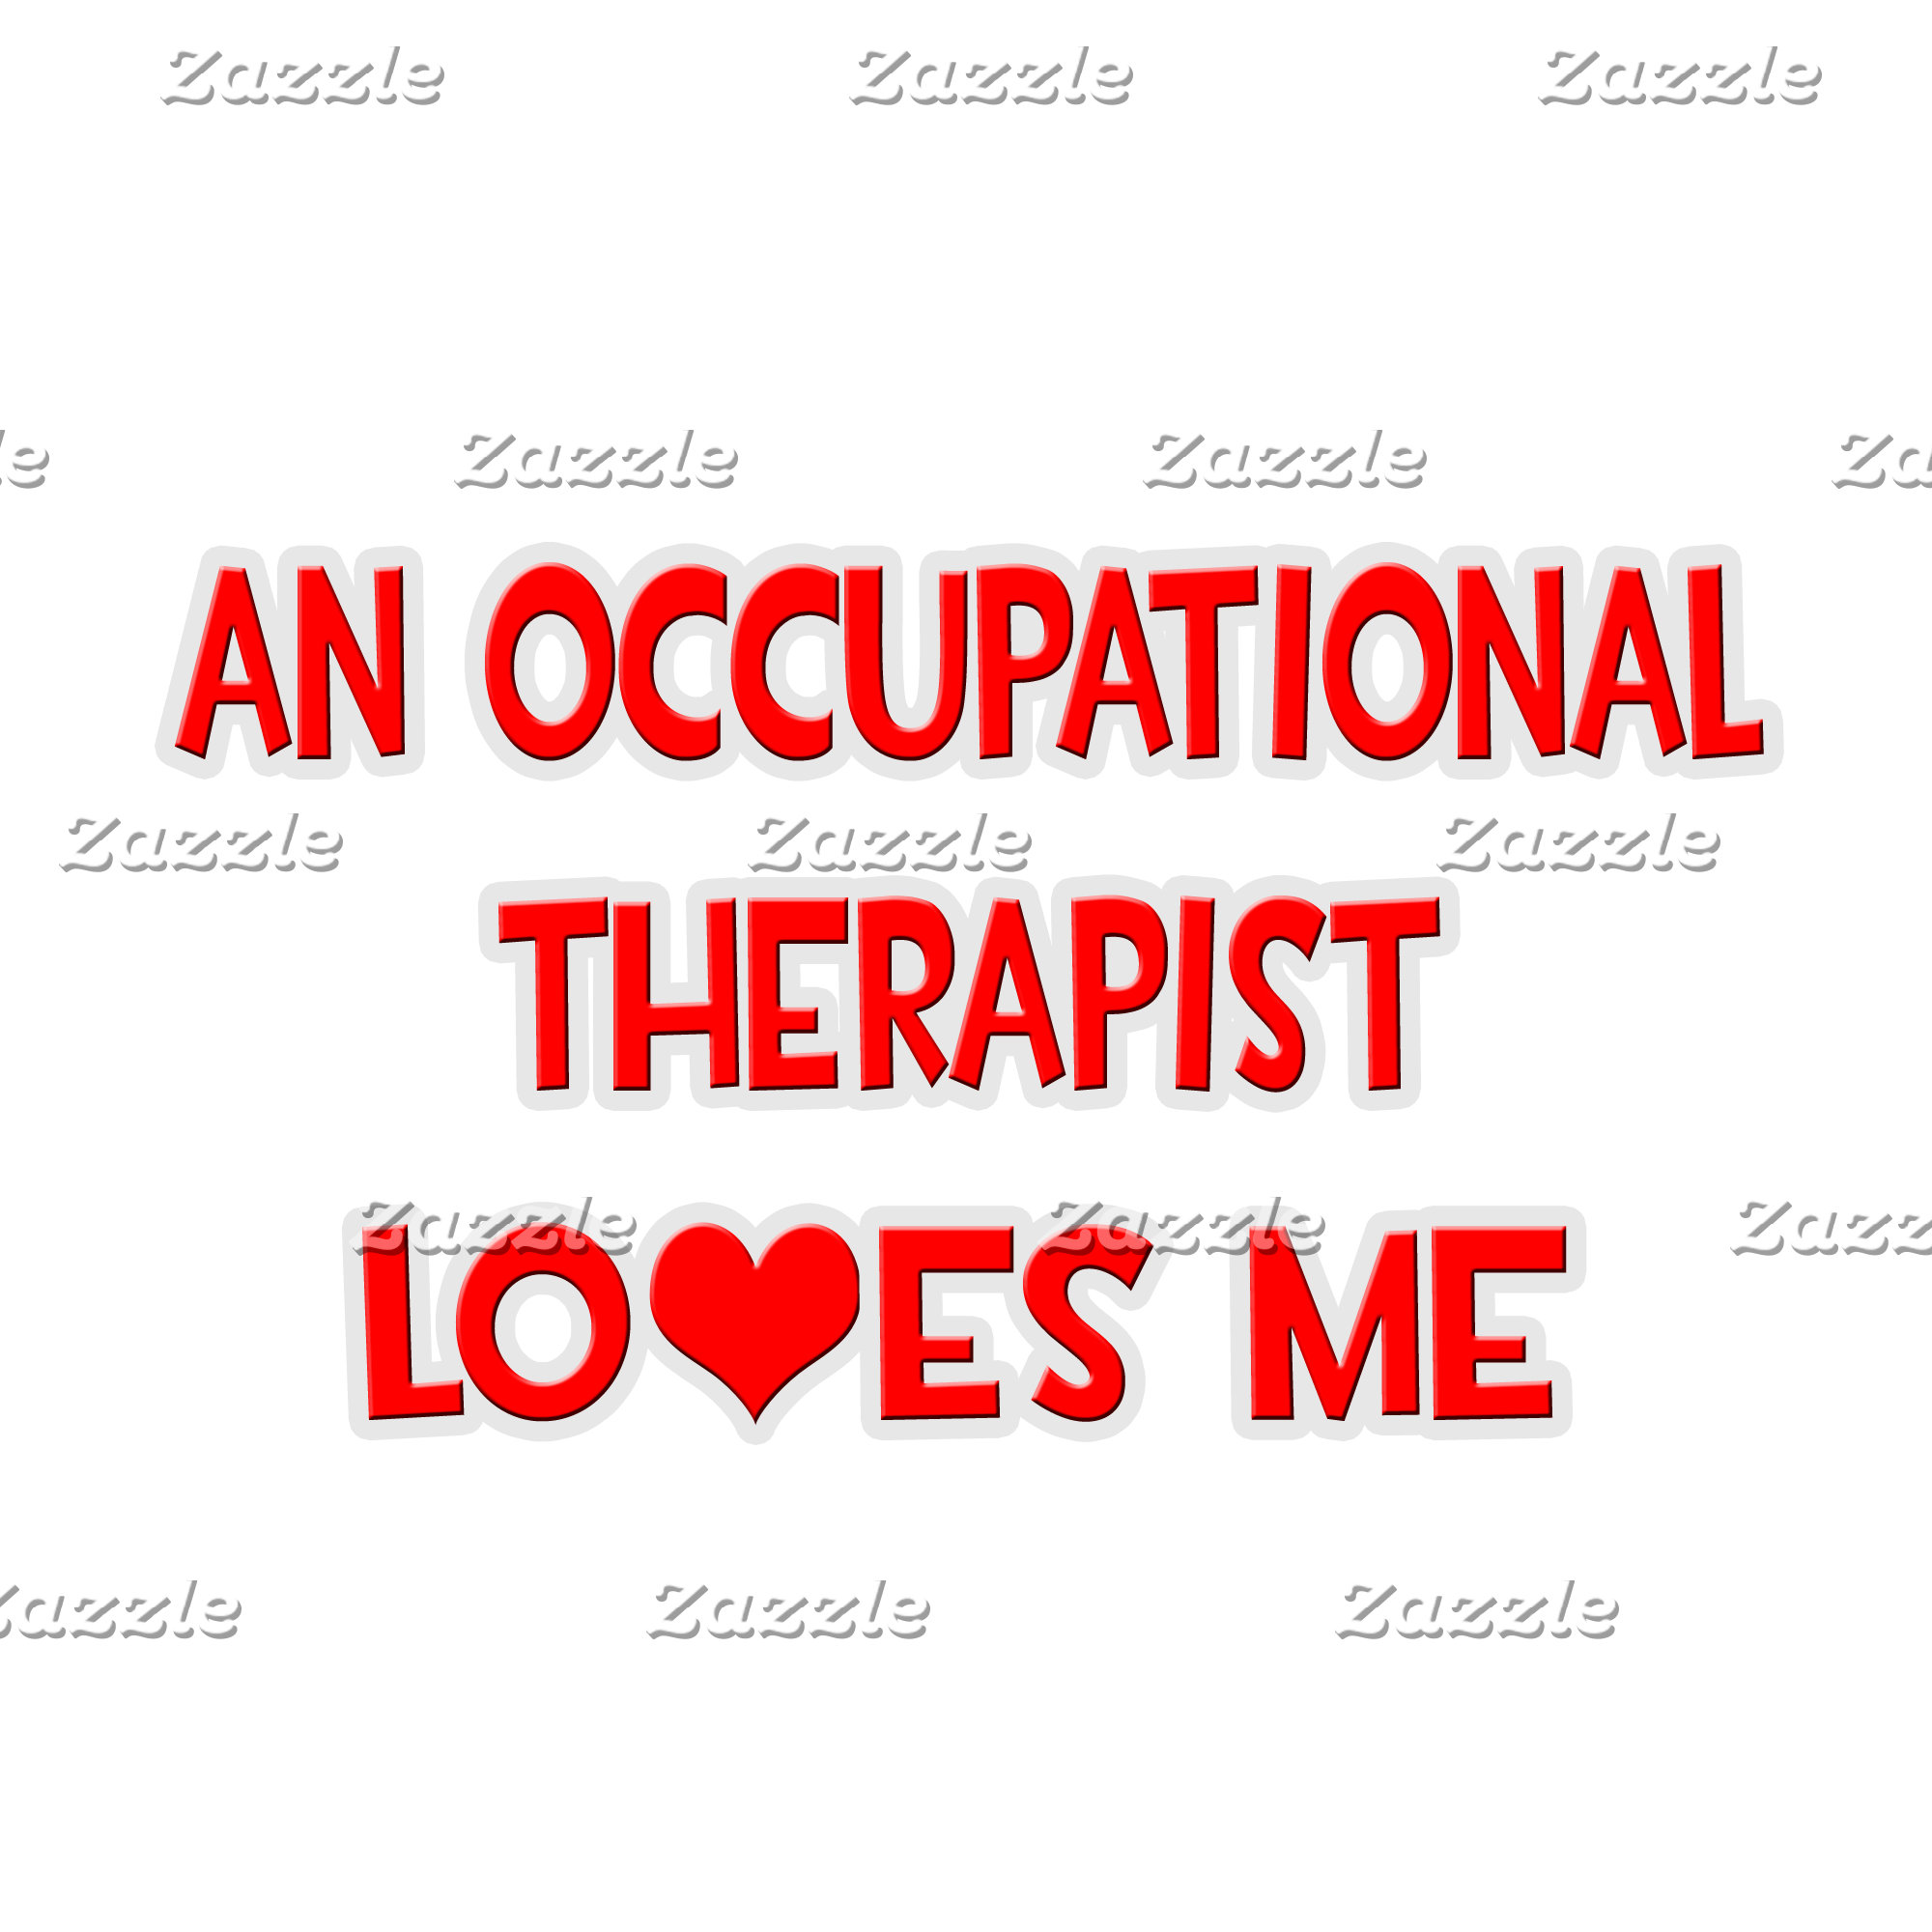 An Occupational Therapist Loves Me